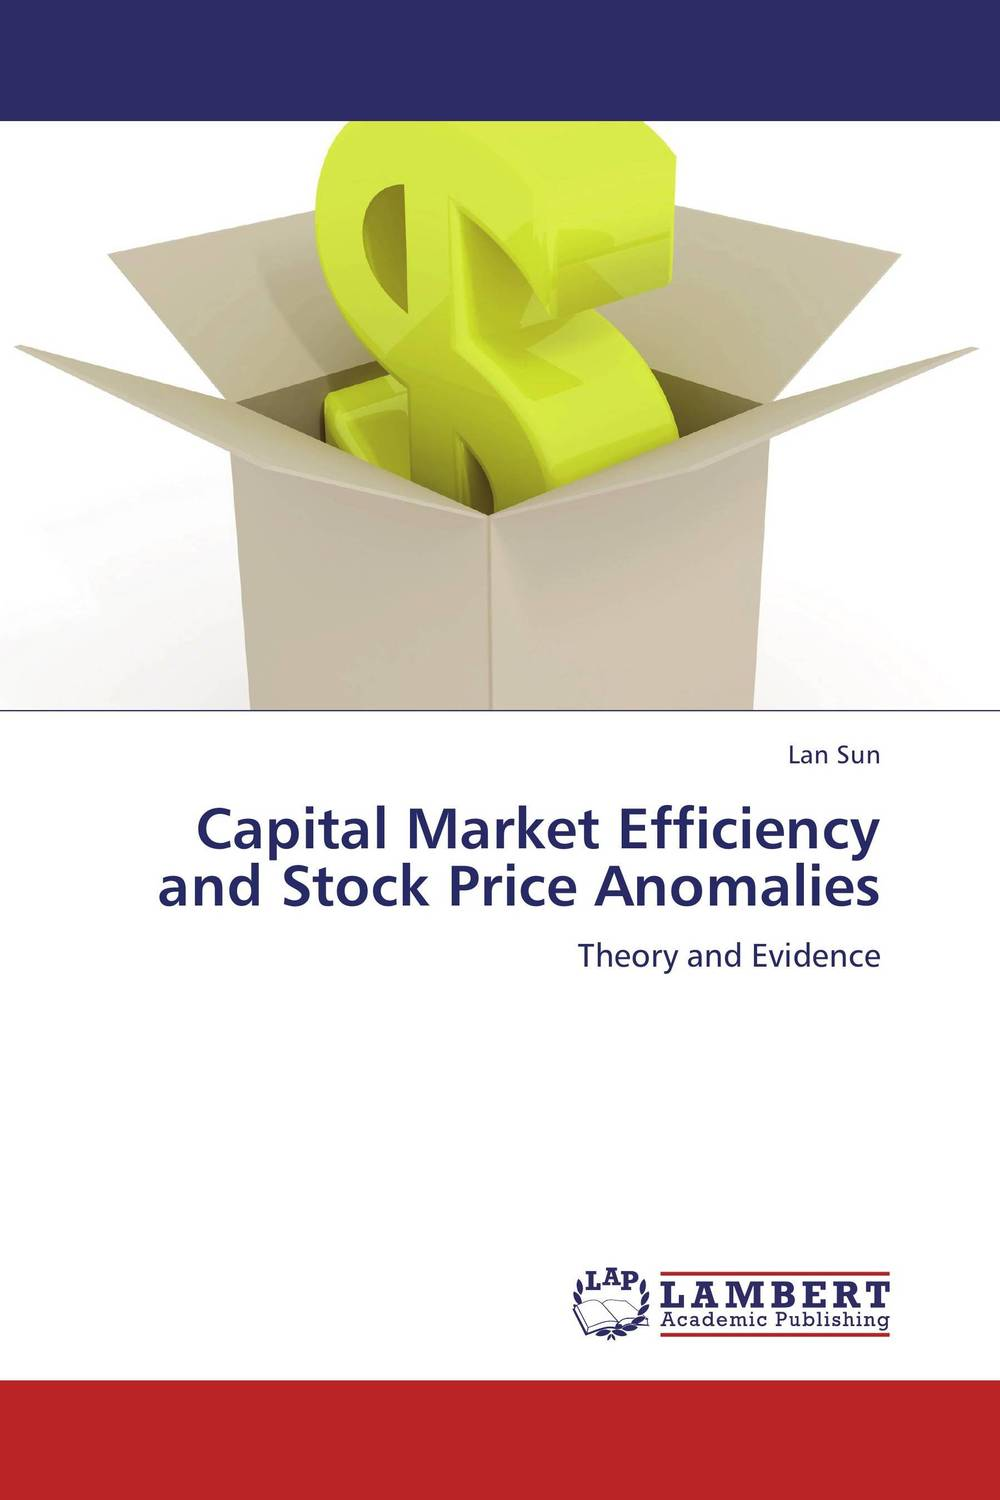 Capital Market Efficiency and Stock Price Anomalies